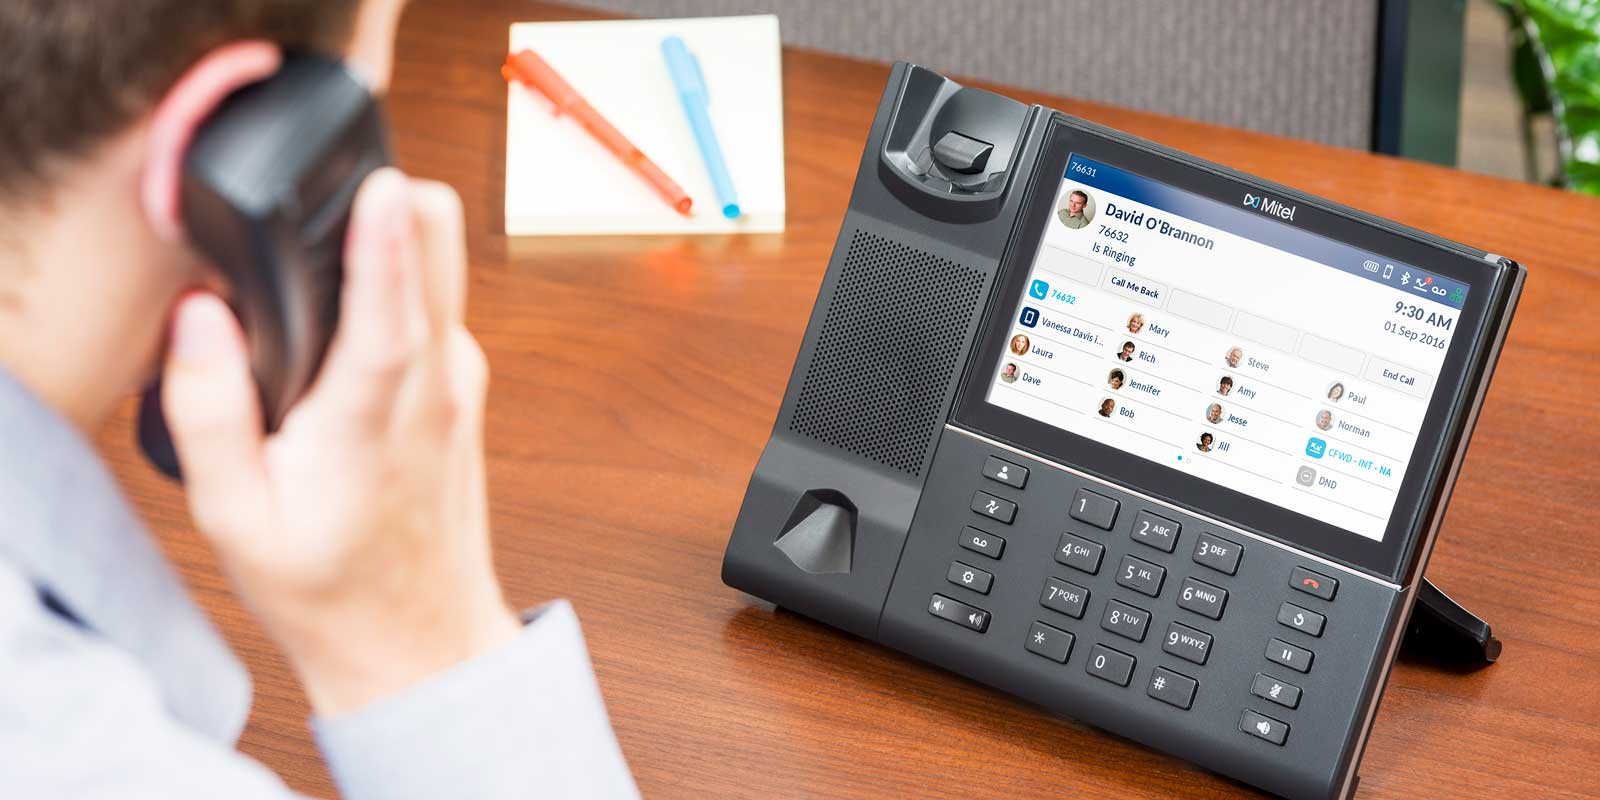 Mitel VoIP telephone system